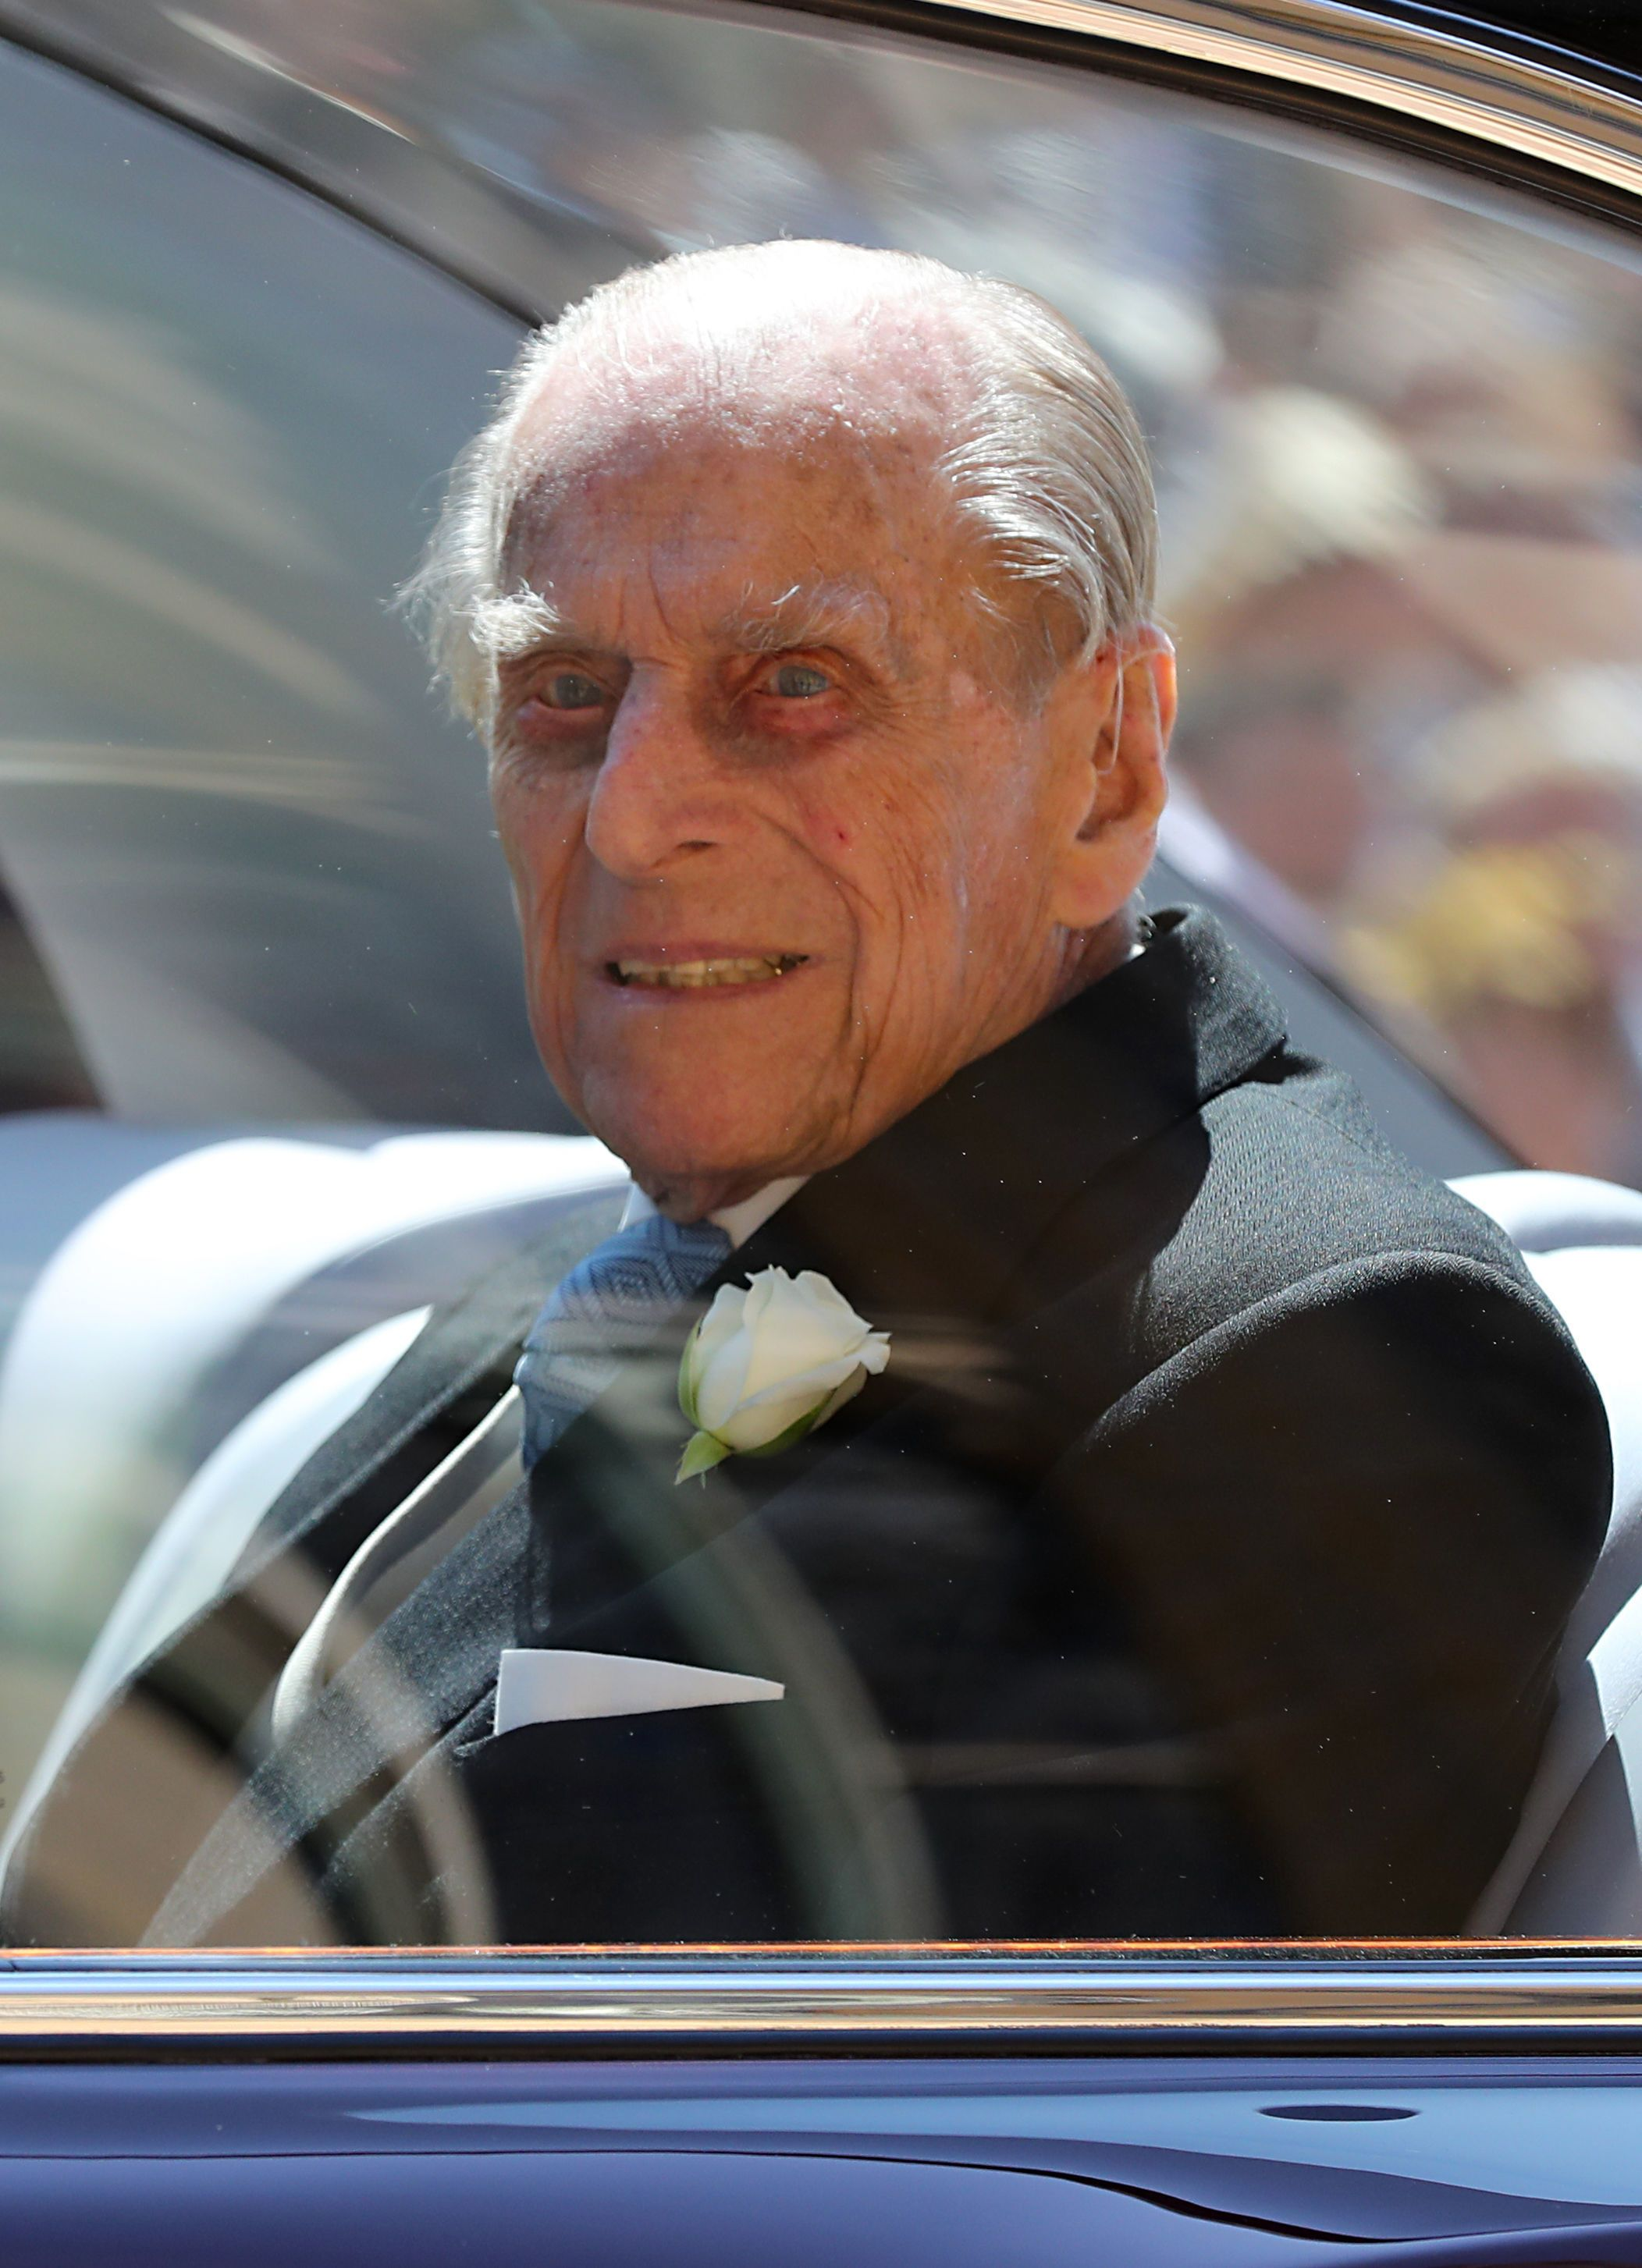 The late Prince Philip, Duke of Edinburgh, leaving St George's Chapel at Windsor Castle after the wedding of Prince Harry to Meghan Markle in Windsor, England | Photo: Gareth Fuller - WPA Pool/Getty Images